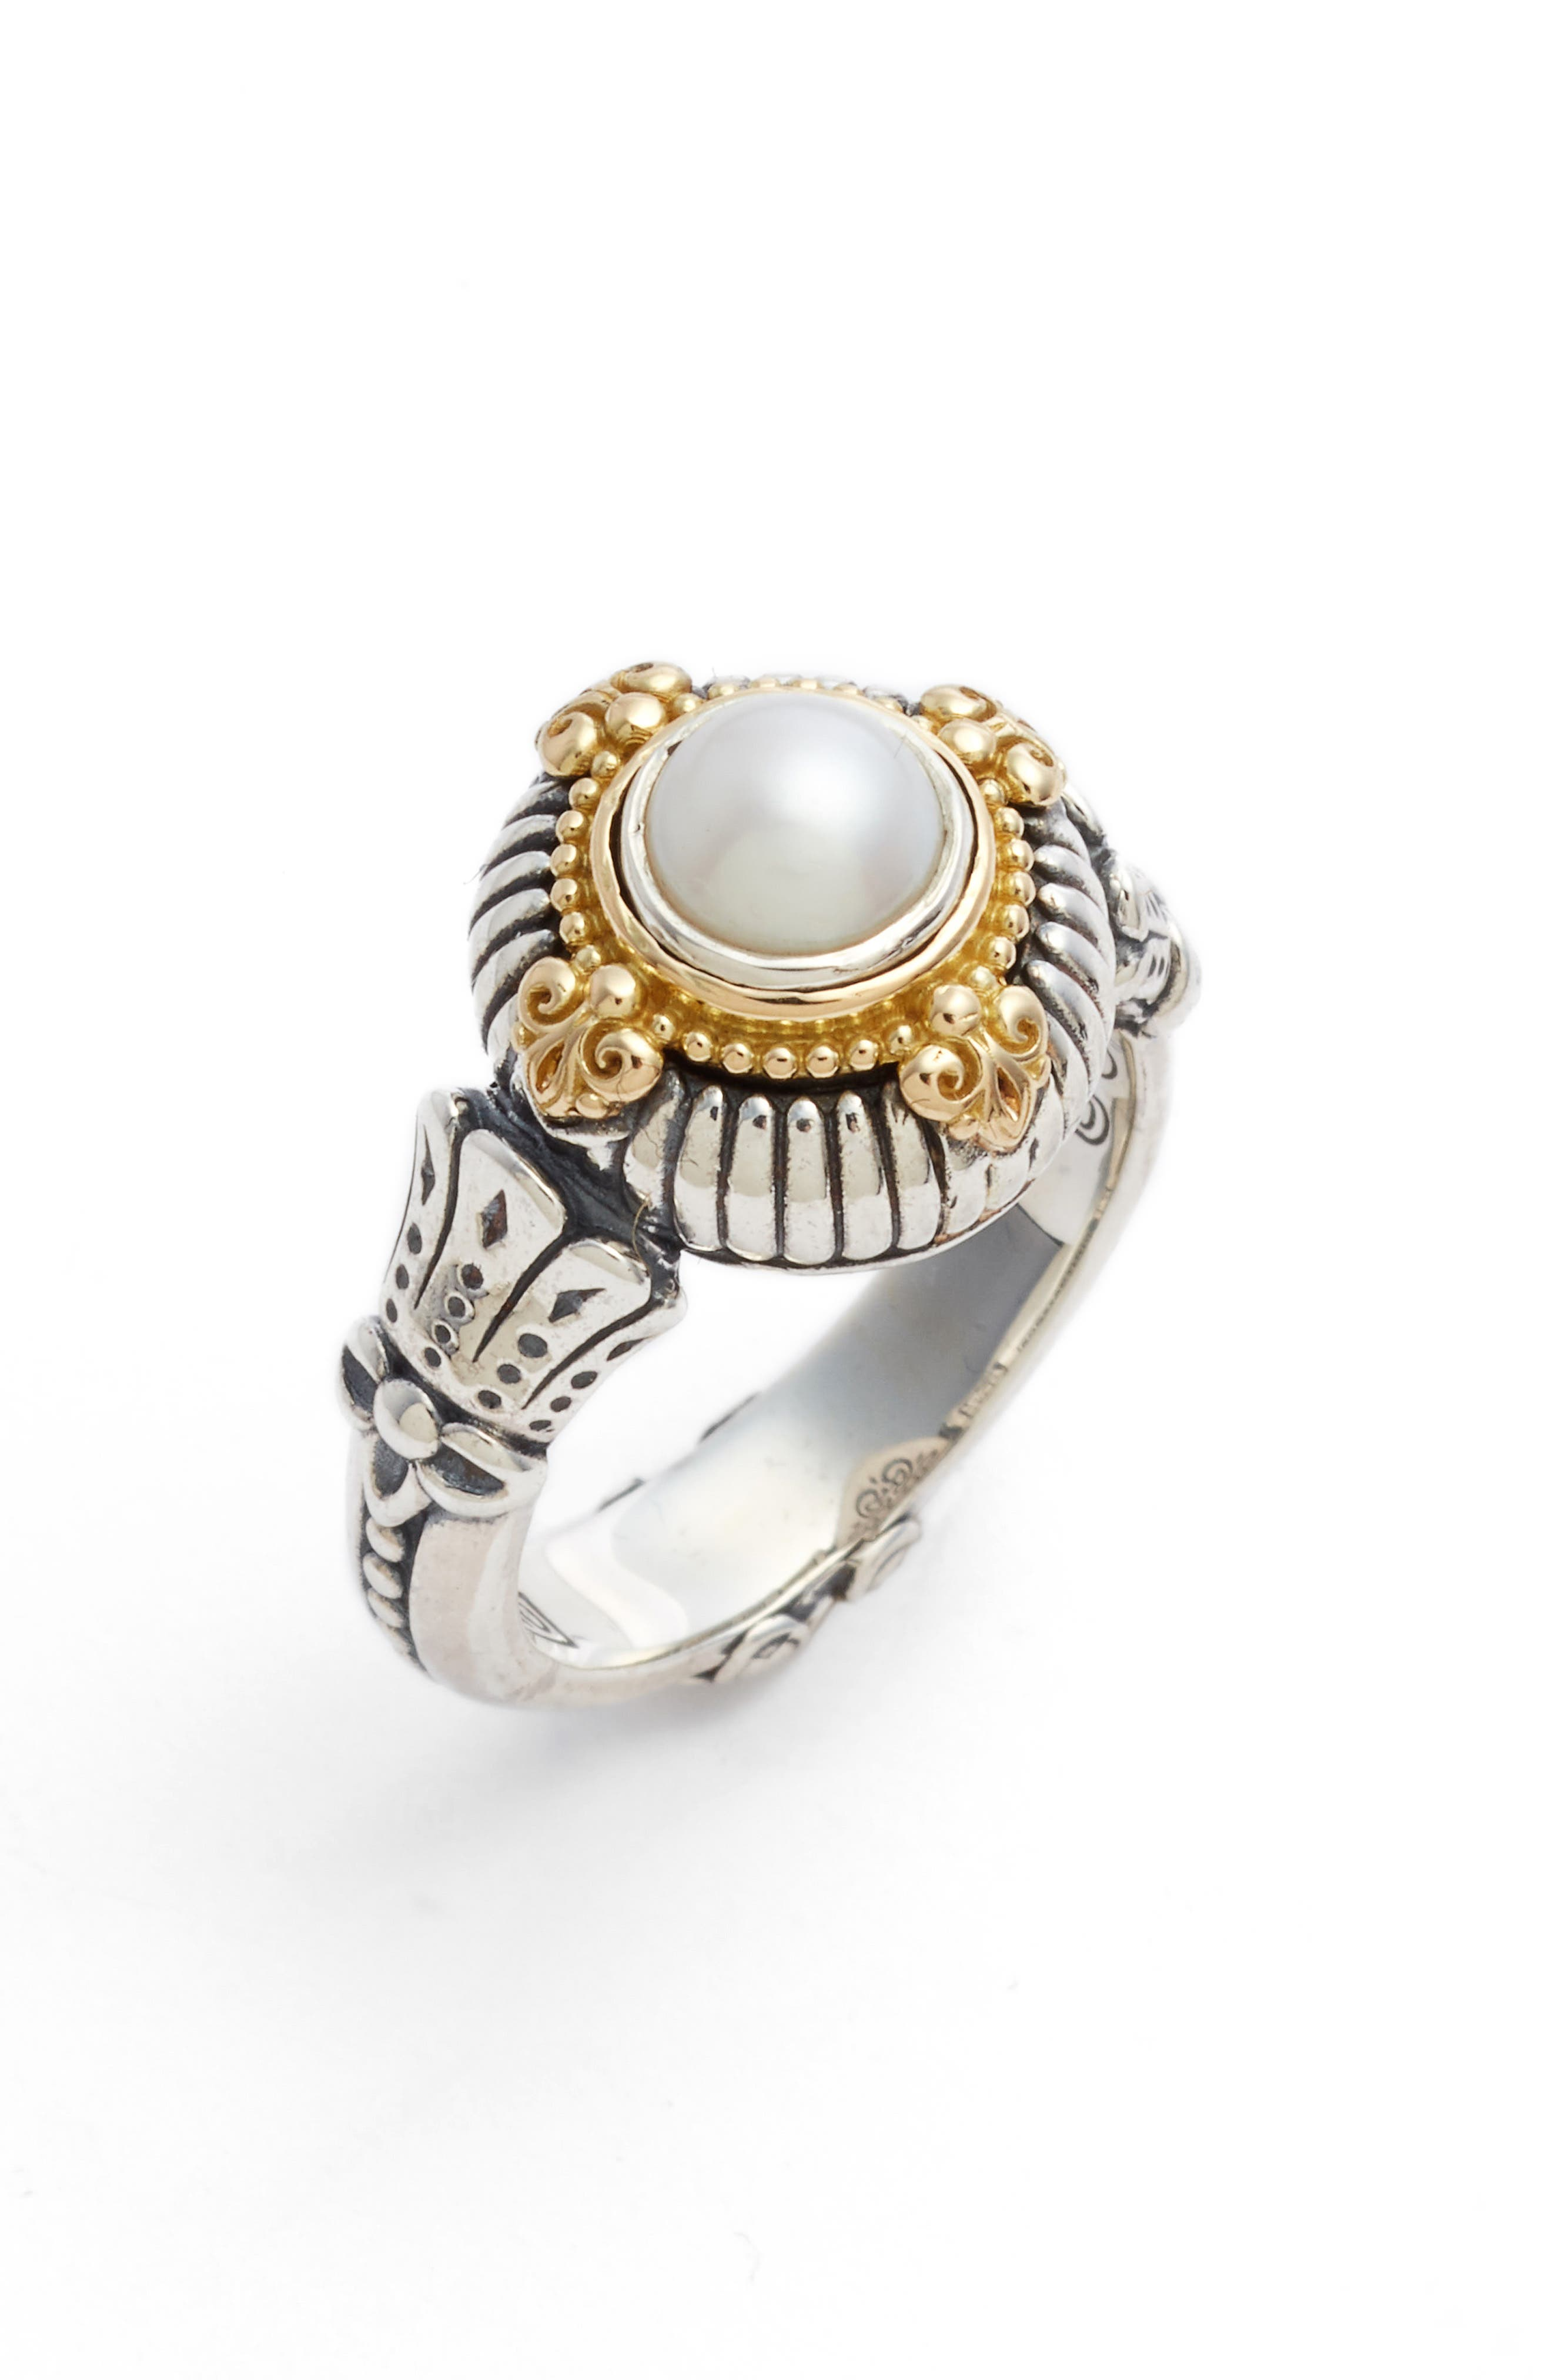 A luxuriously appointed cultured pearl sits at the center of striking ring handmade by Athenian artisans. Style Name: Konstantino Etched Sterling & Cultured Pearl Ring. Style Number: 5577812. Available in stores.